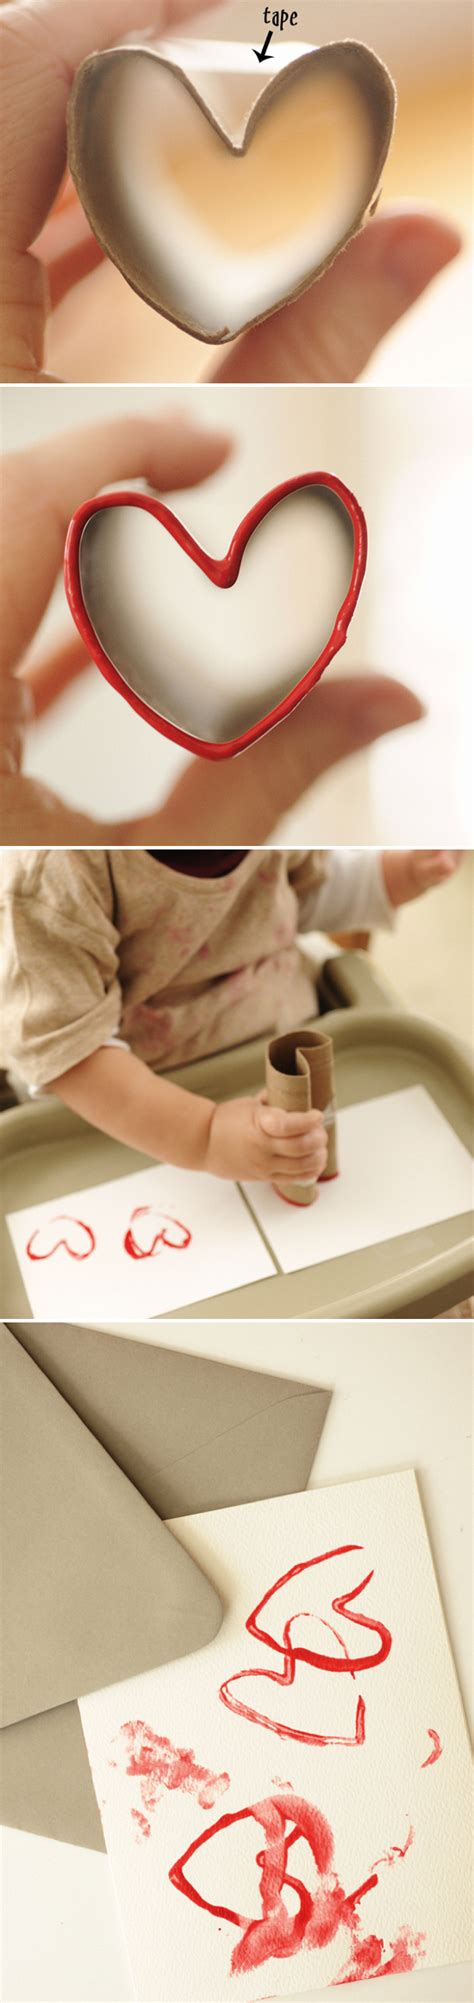 Toilet Paper Roll Crafts For Easy - toilet paper roll crafts paper crafts